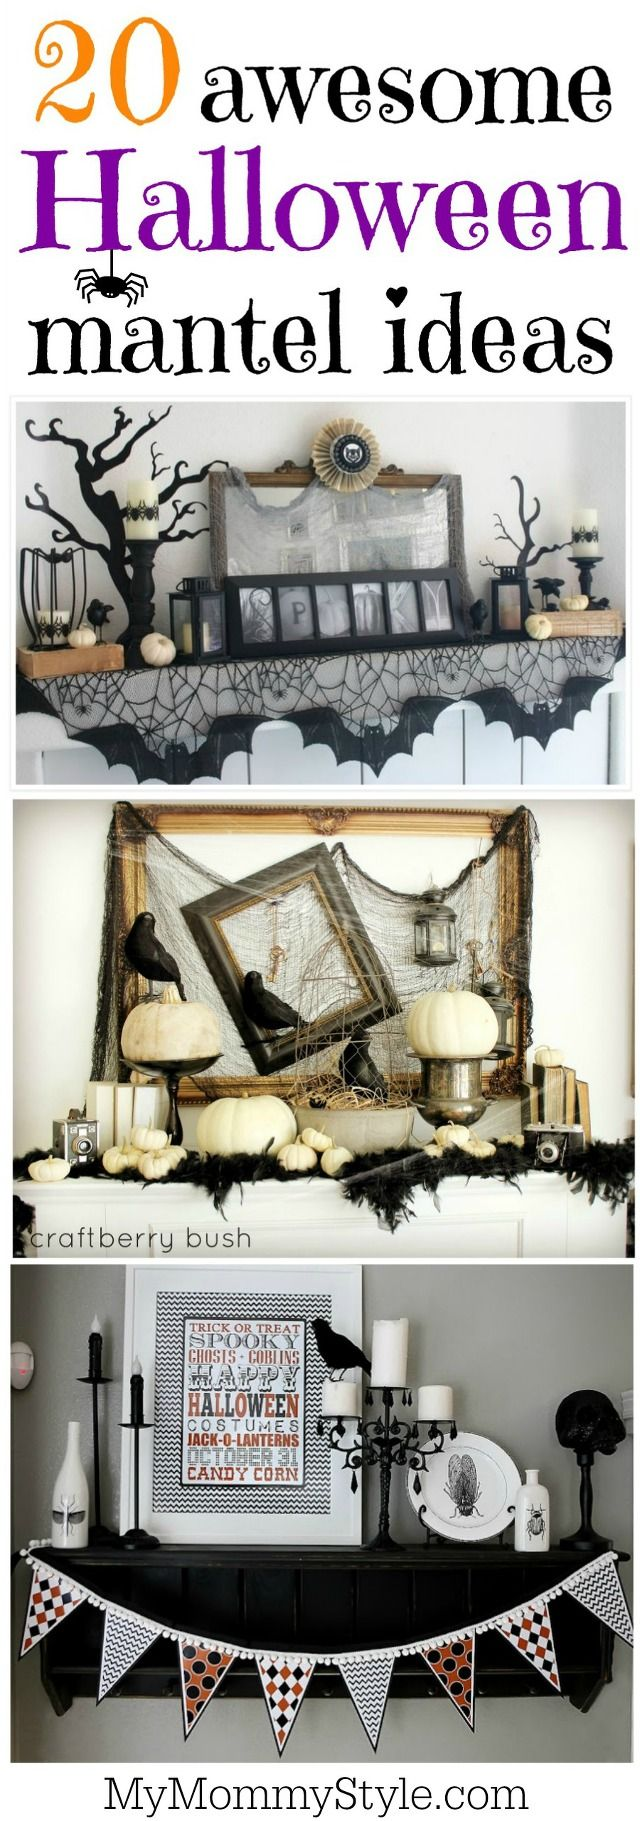 20 awesome Halloween mantel ideas